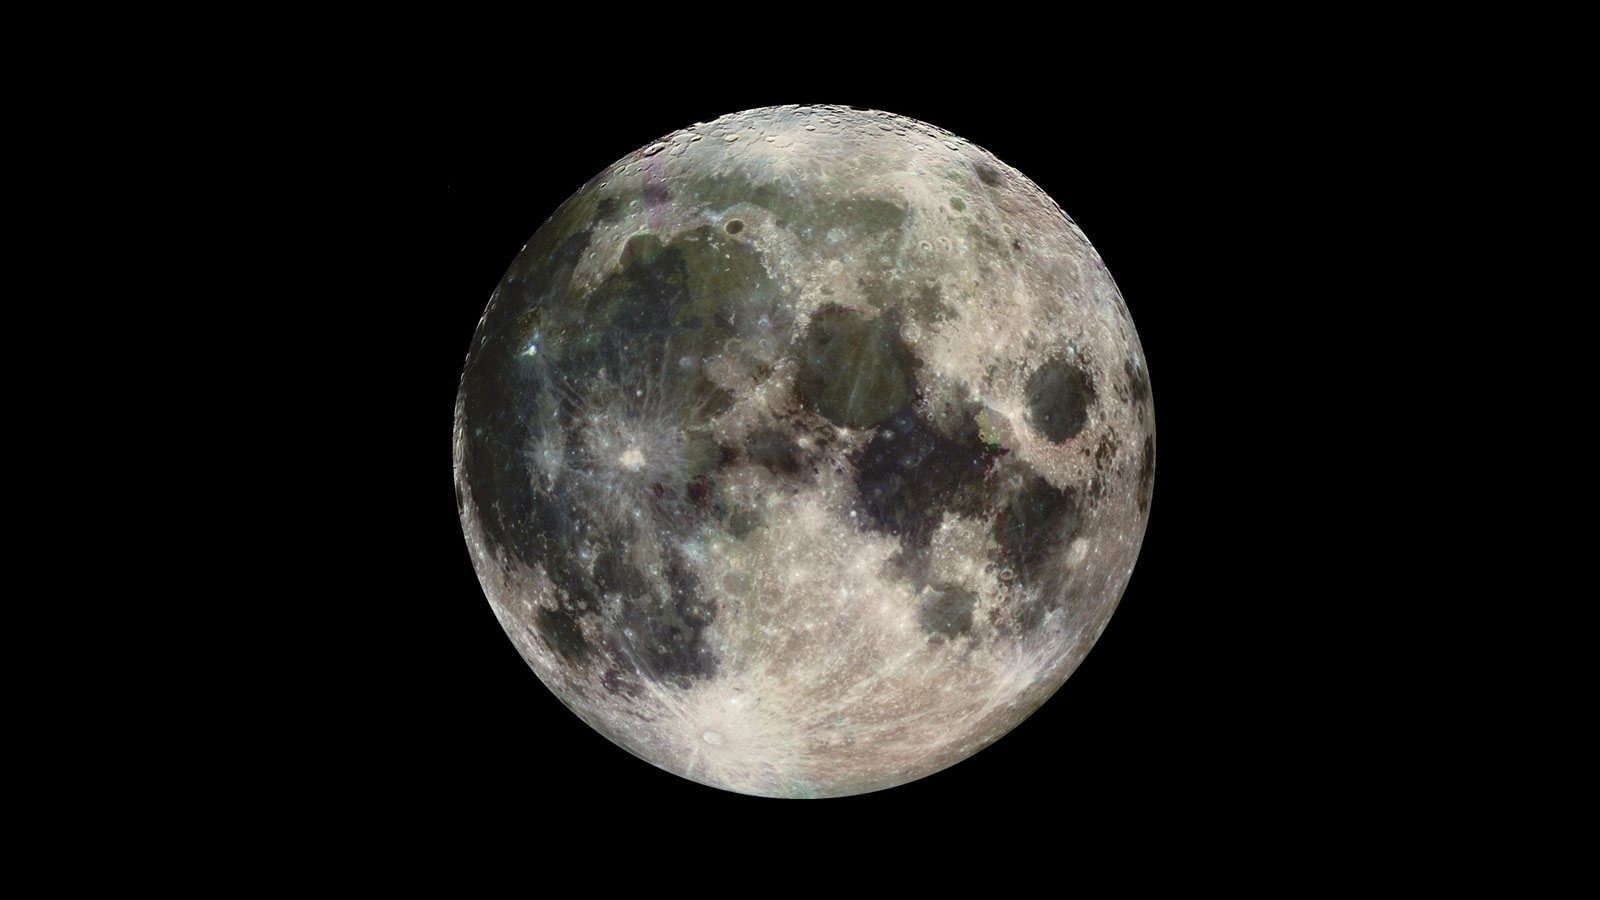 The Moon - Moon facts